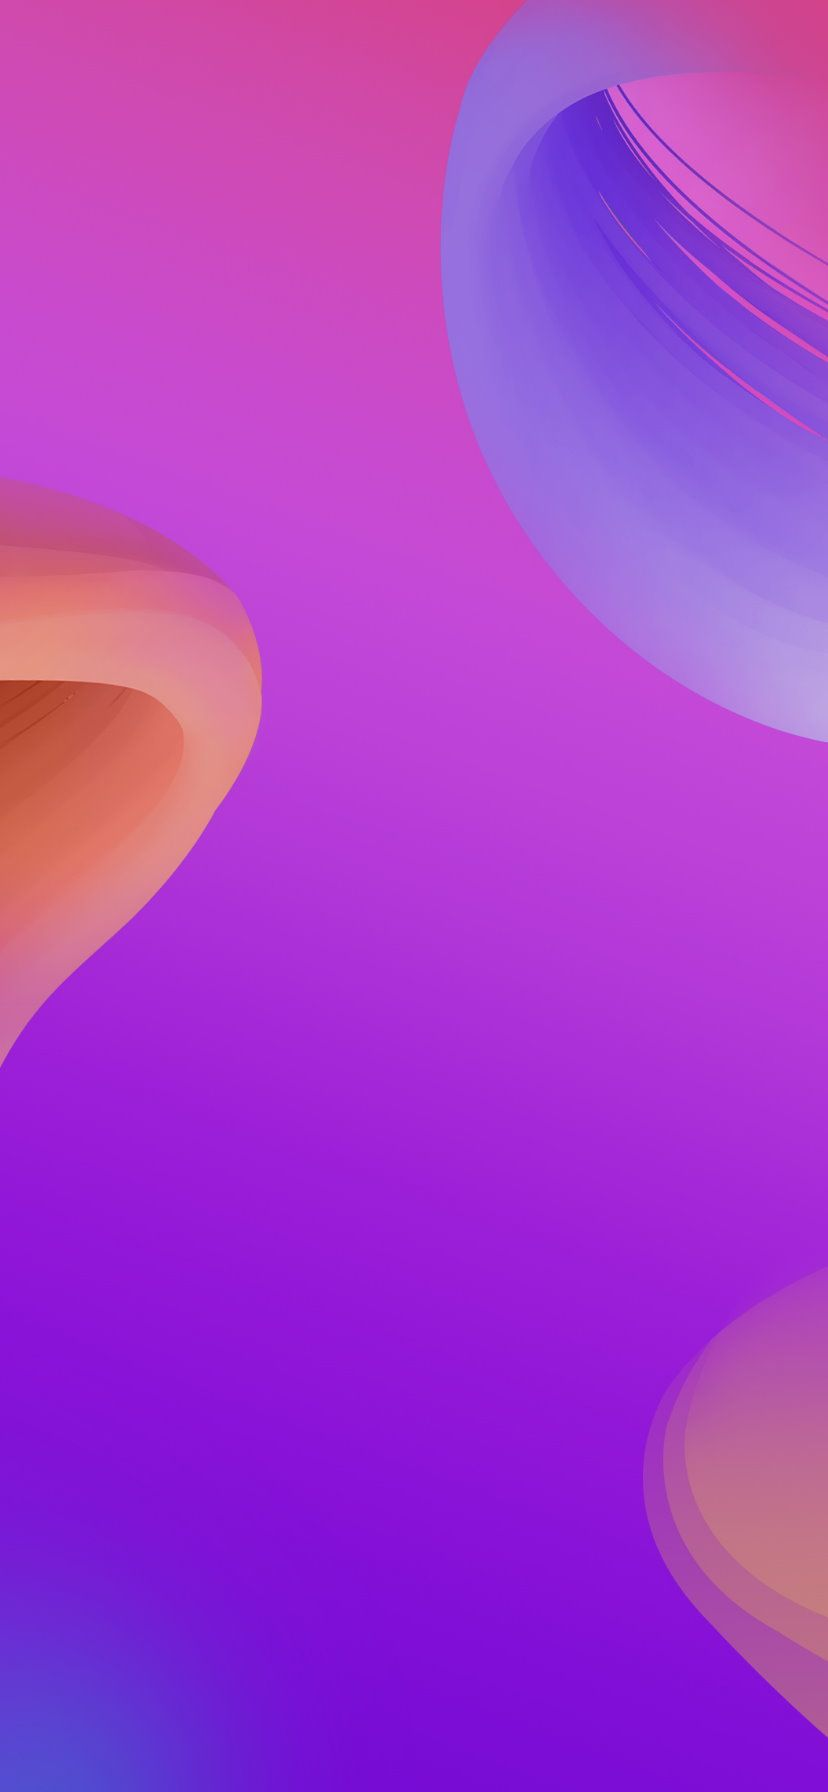 Wallpapers Iphone Xr Ombre Wallpaper Iphone Valentine Wallpaper Hd Valentines Wallpaper